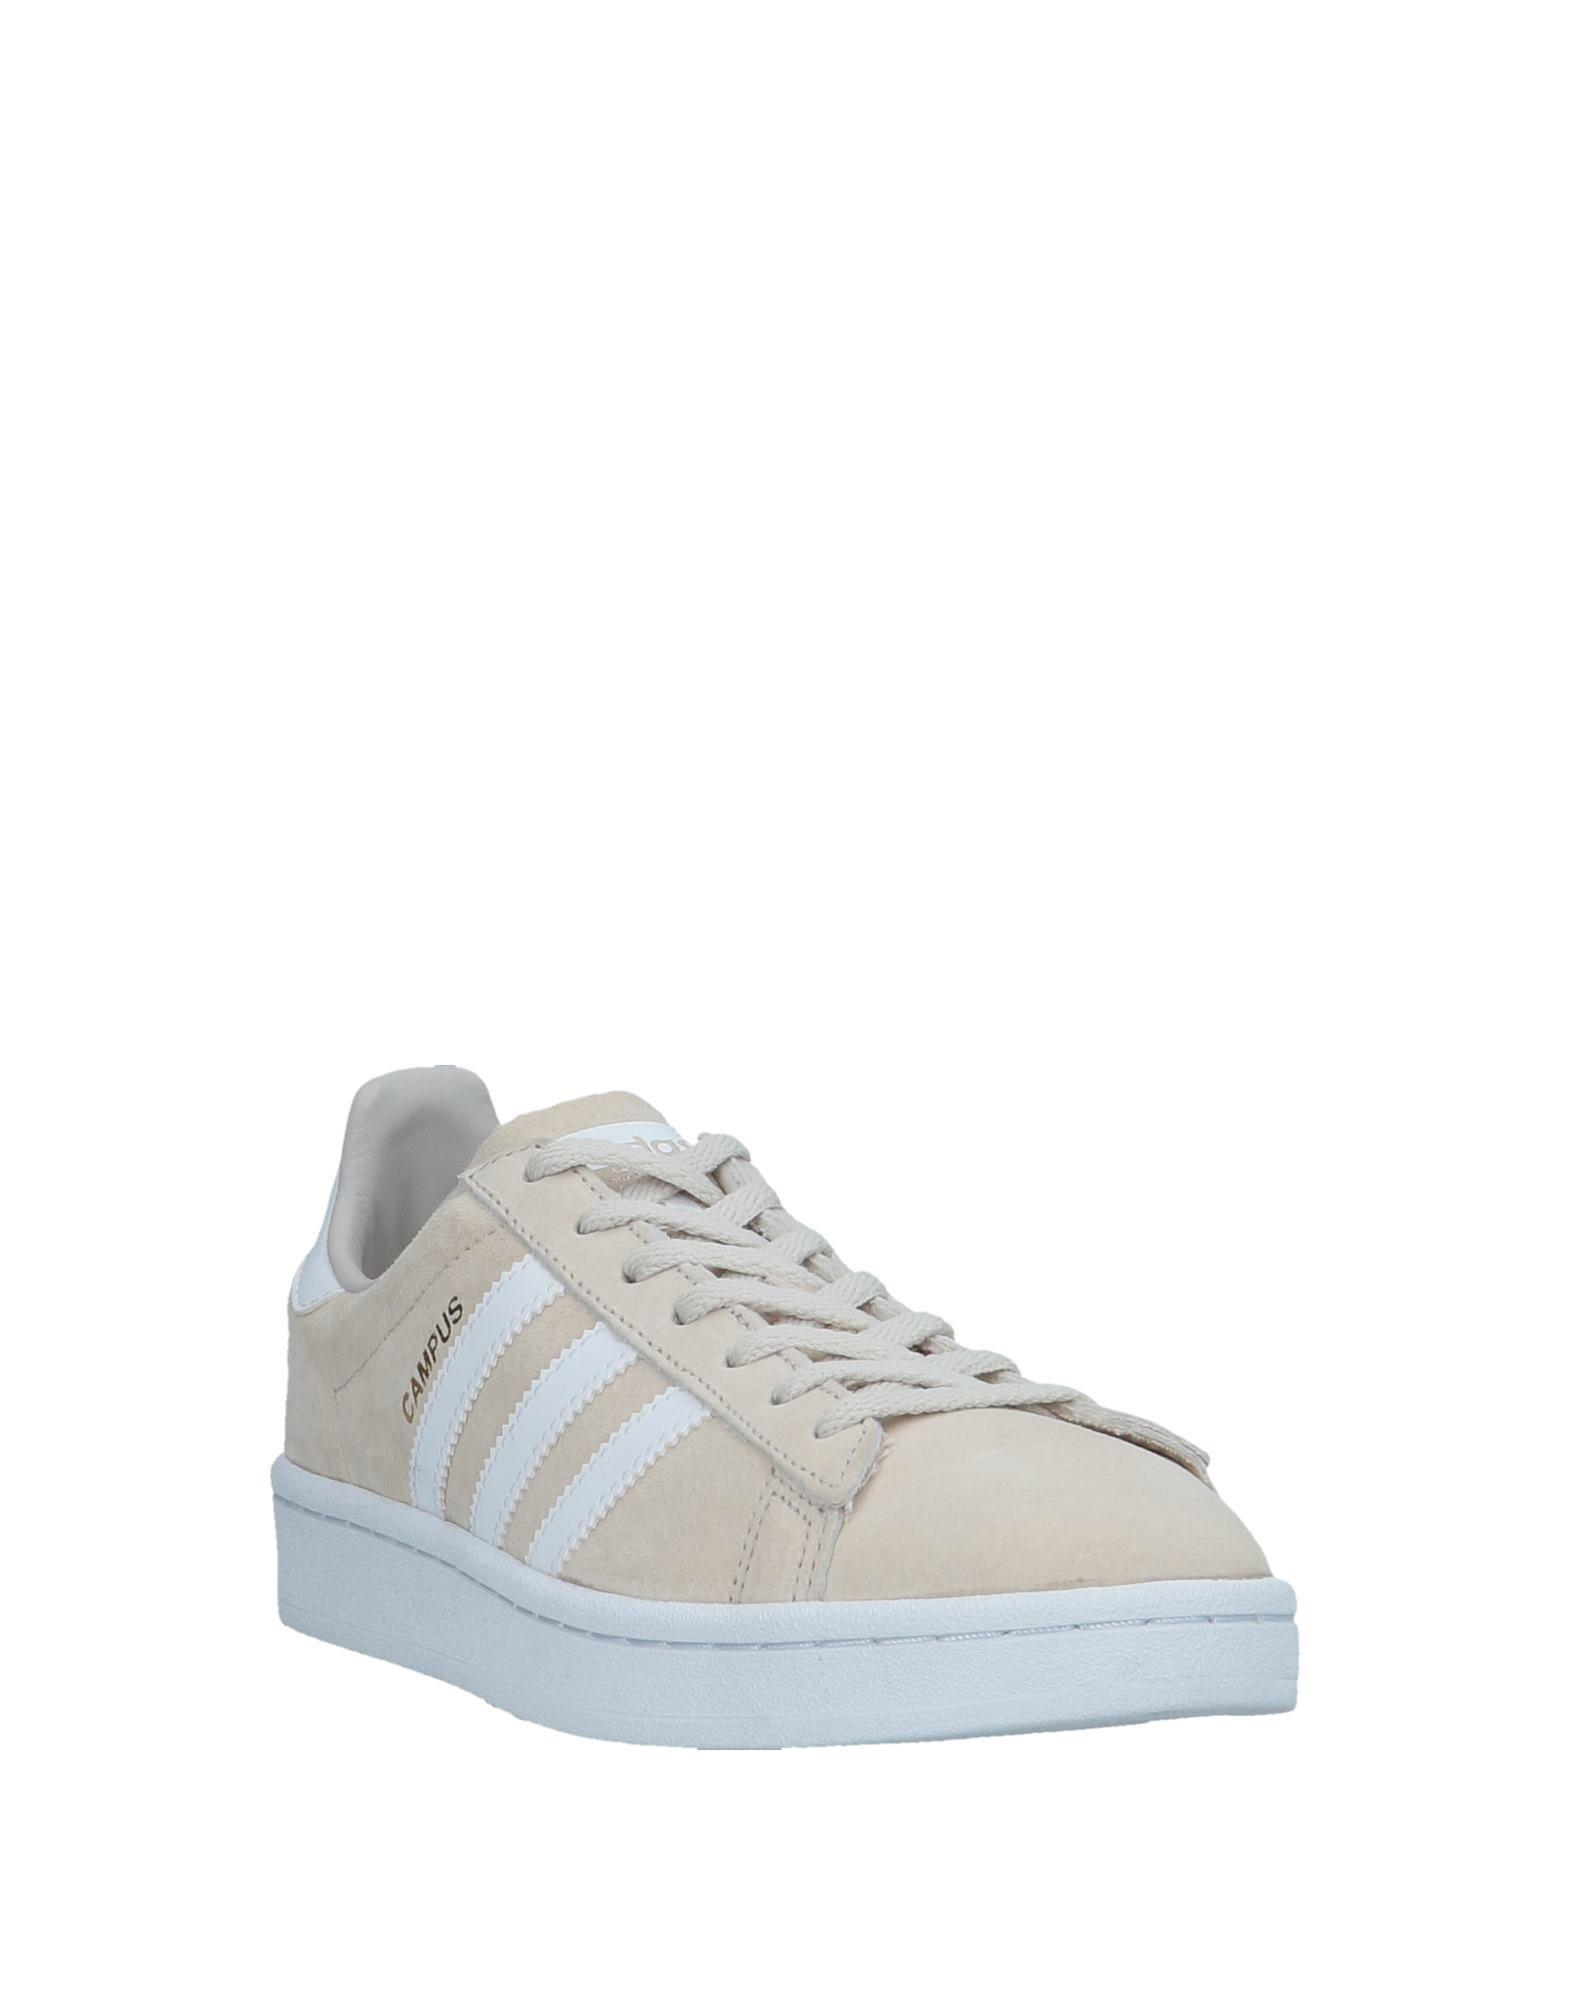 adidas Leather Low-tops & Sneakers in Beige (Natural)